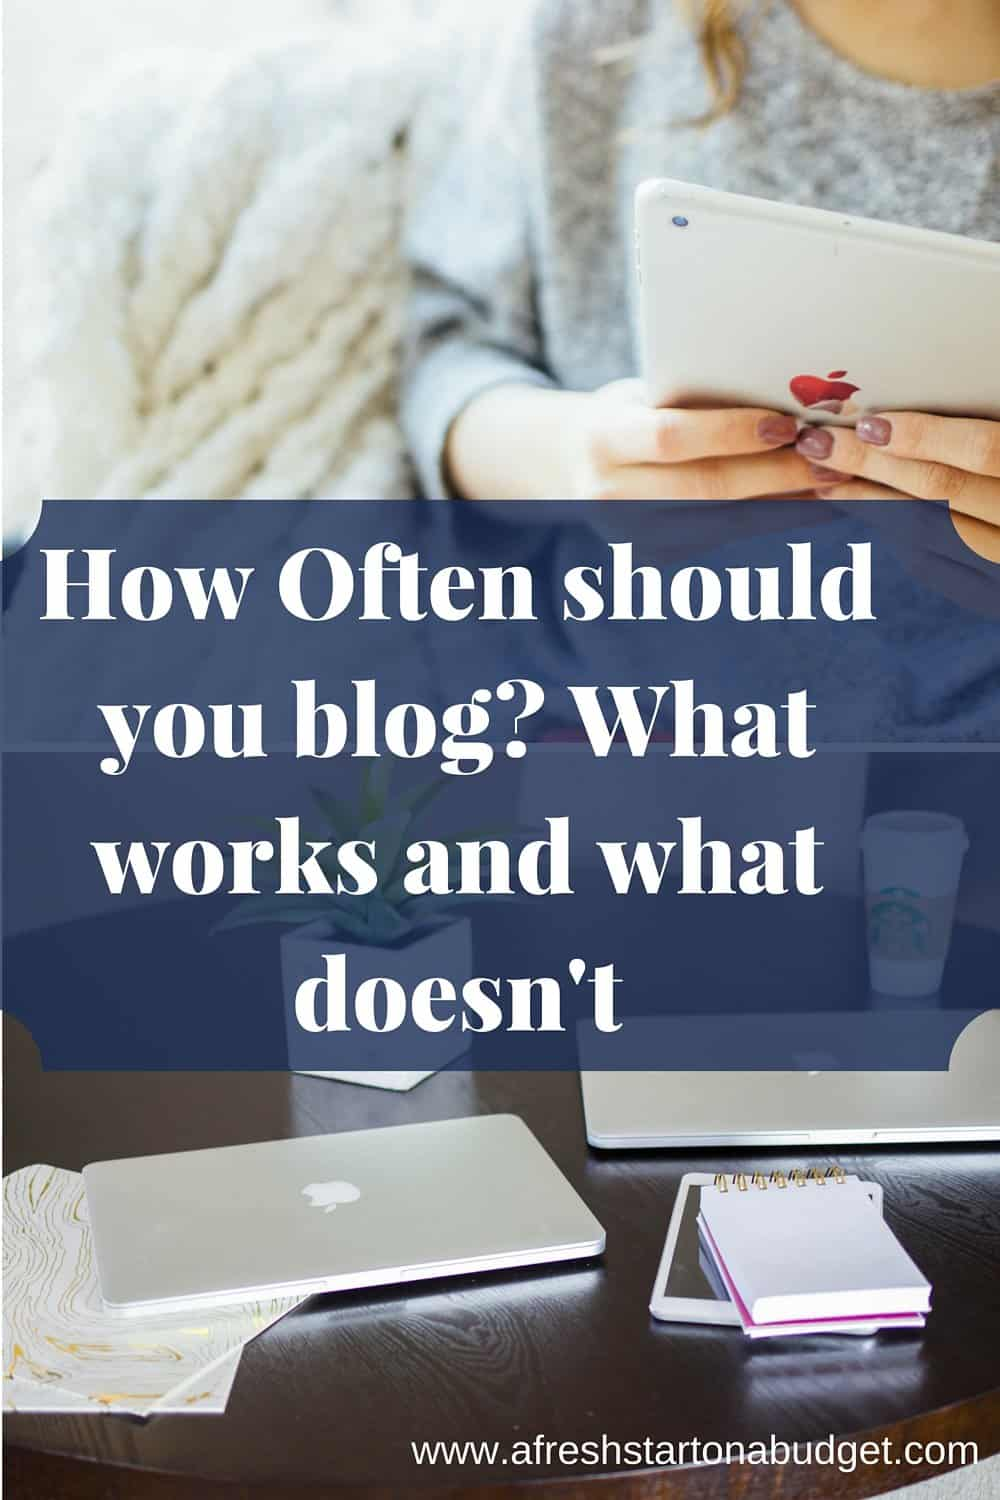 How Often should you blog- What works and what doesn't